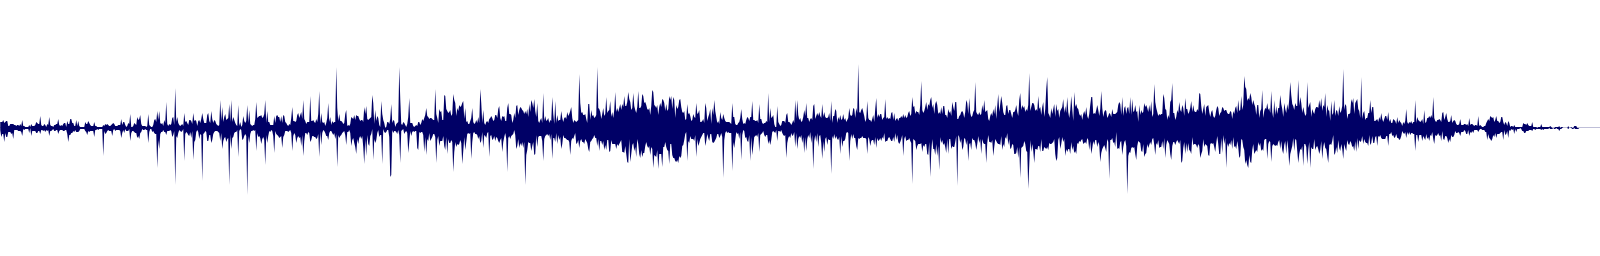 waveform of track #139421